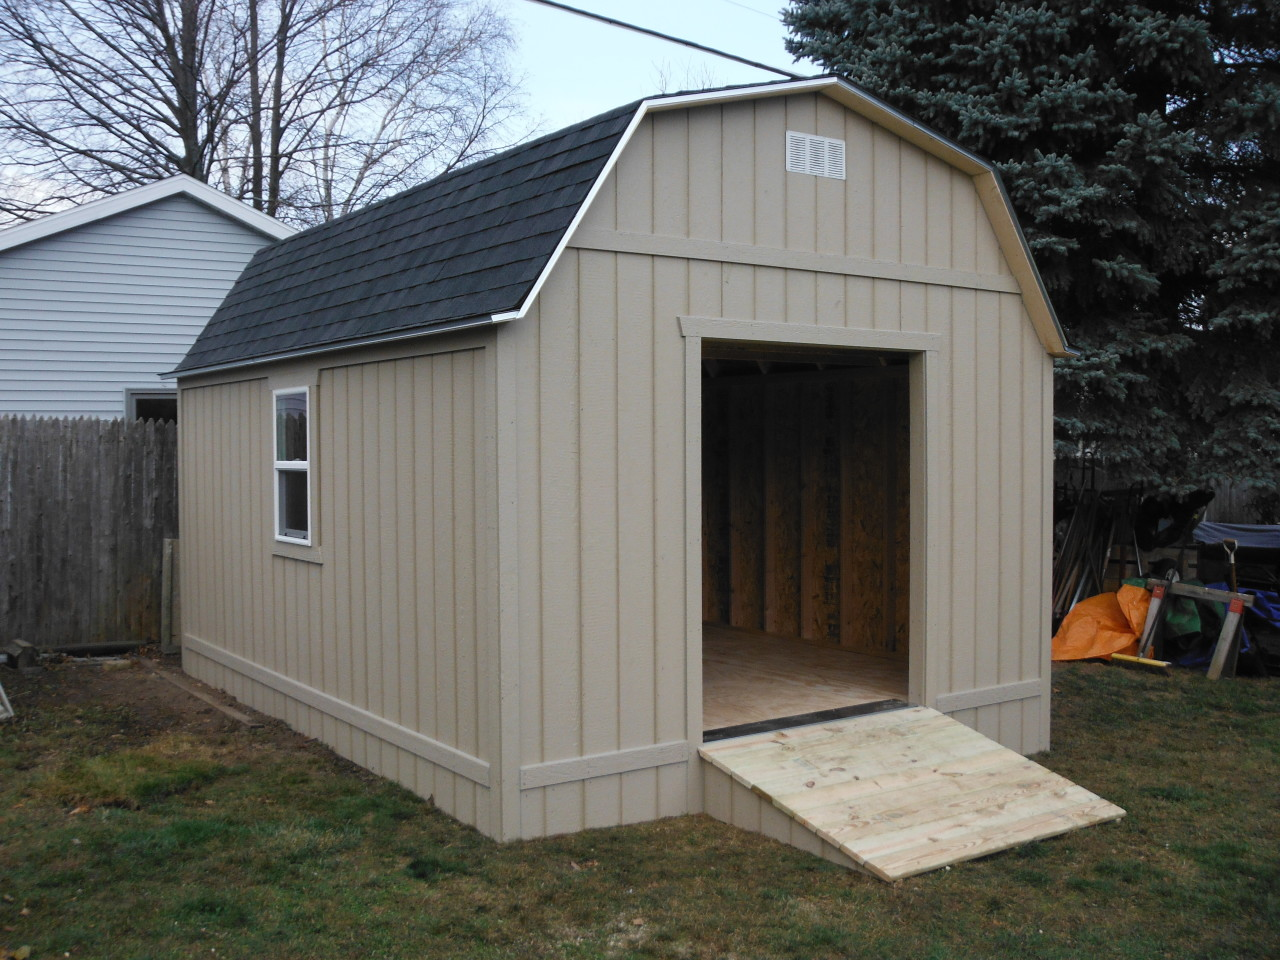 Gambrell Roof Gallery Shed Windows Shed Windows And More 843 393 1820